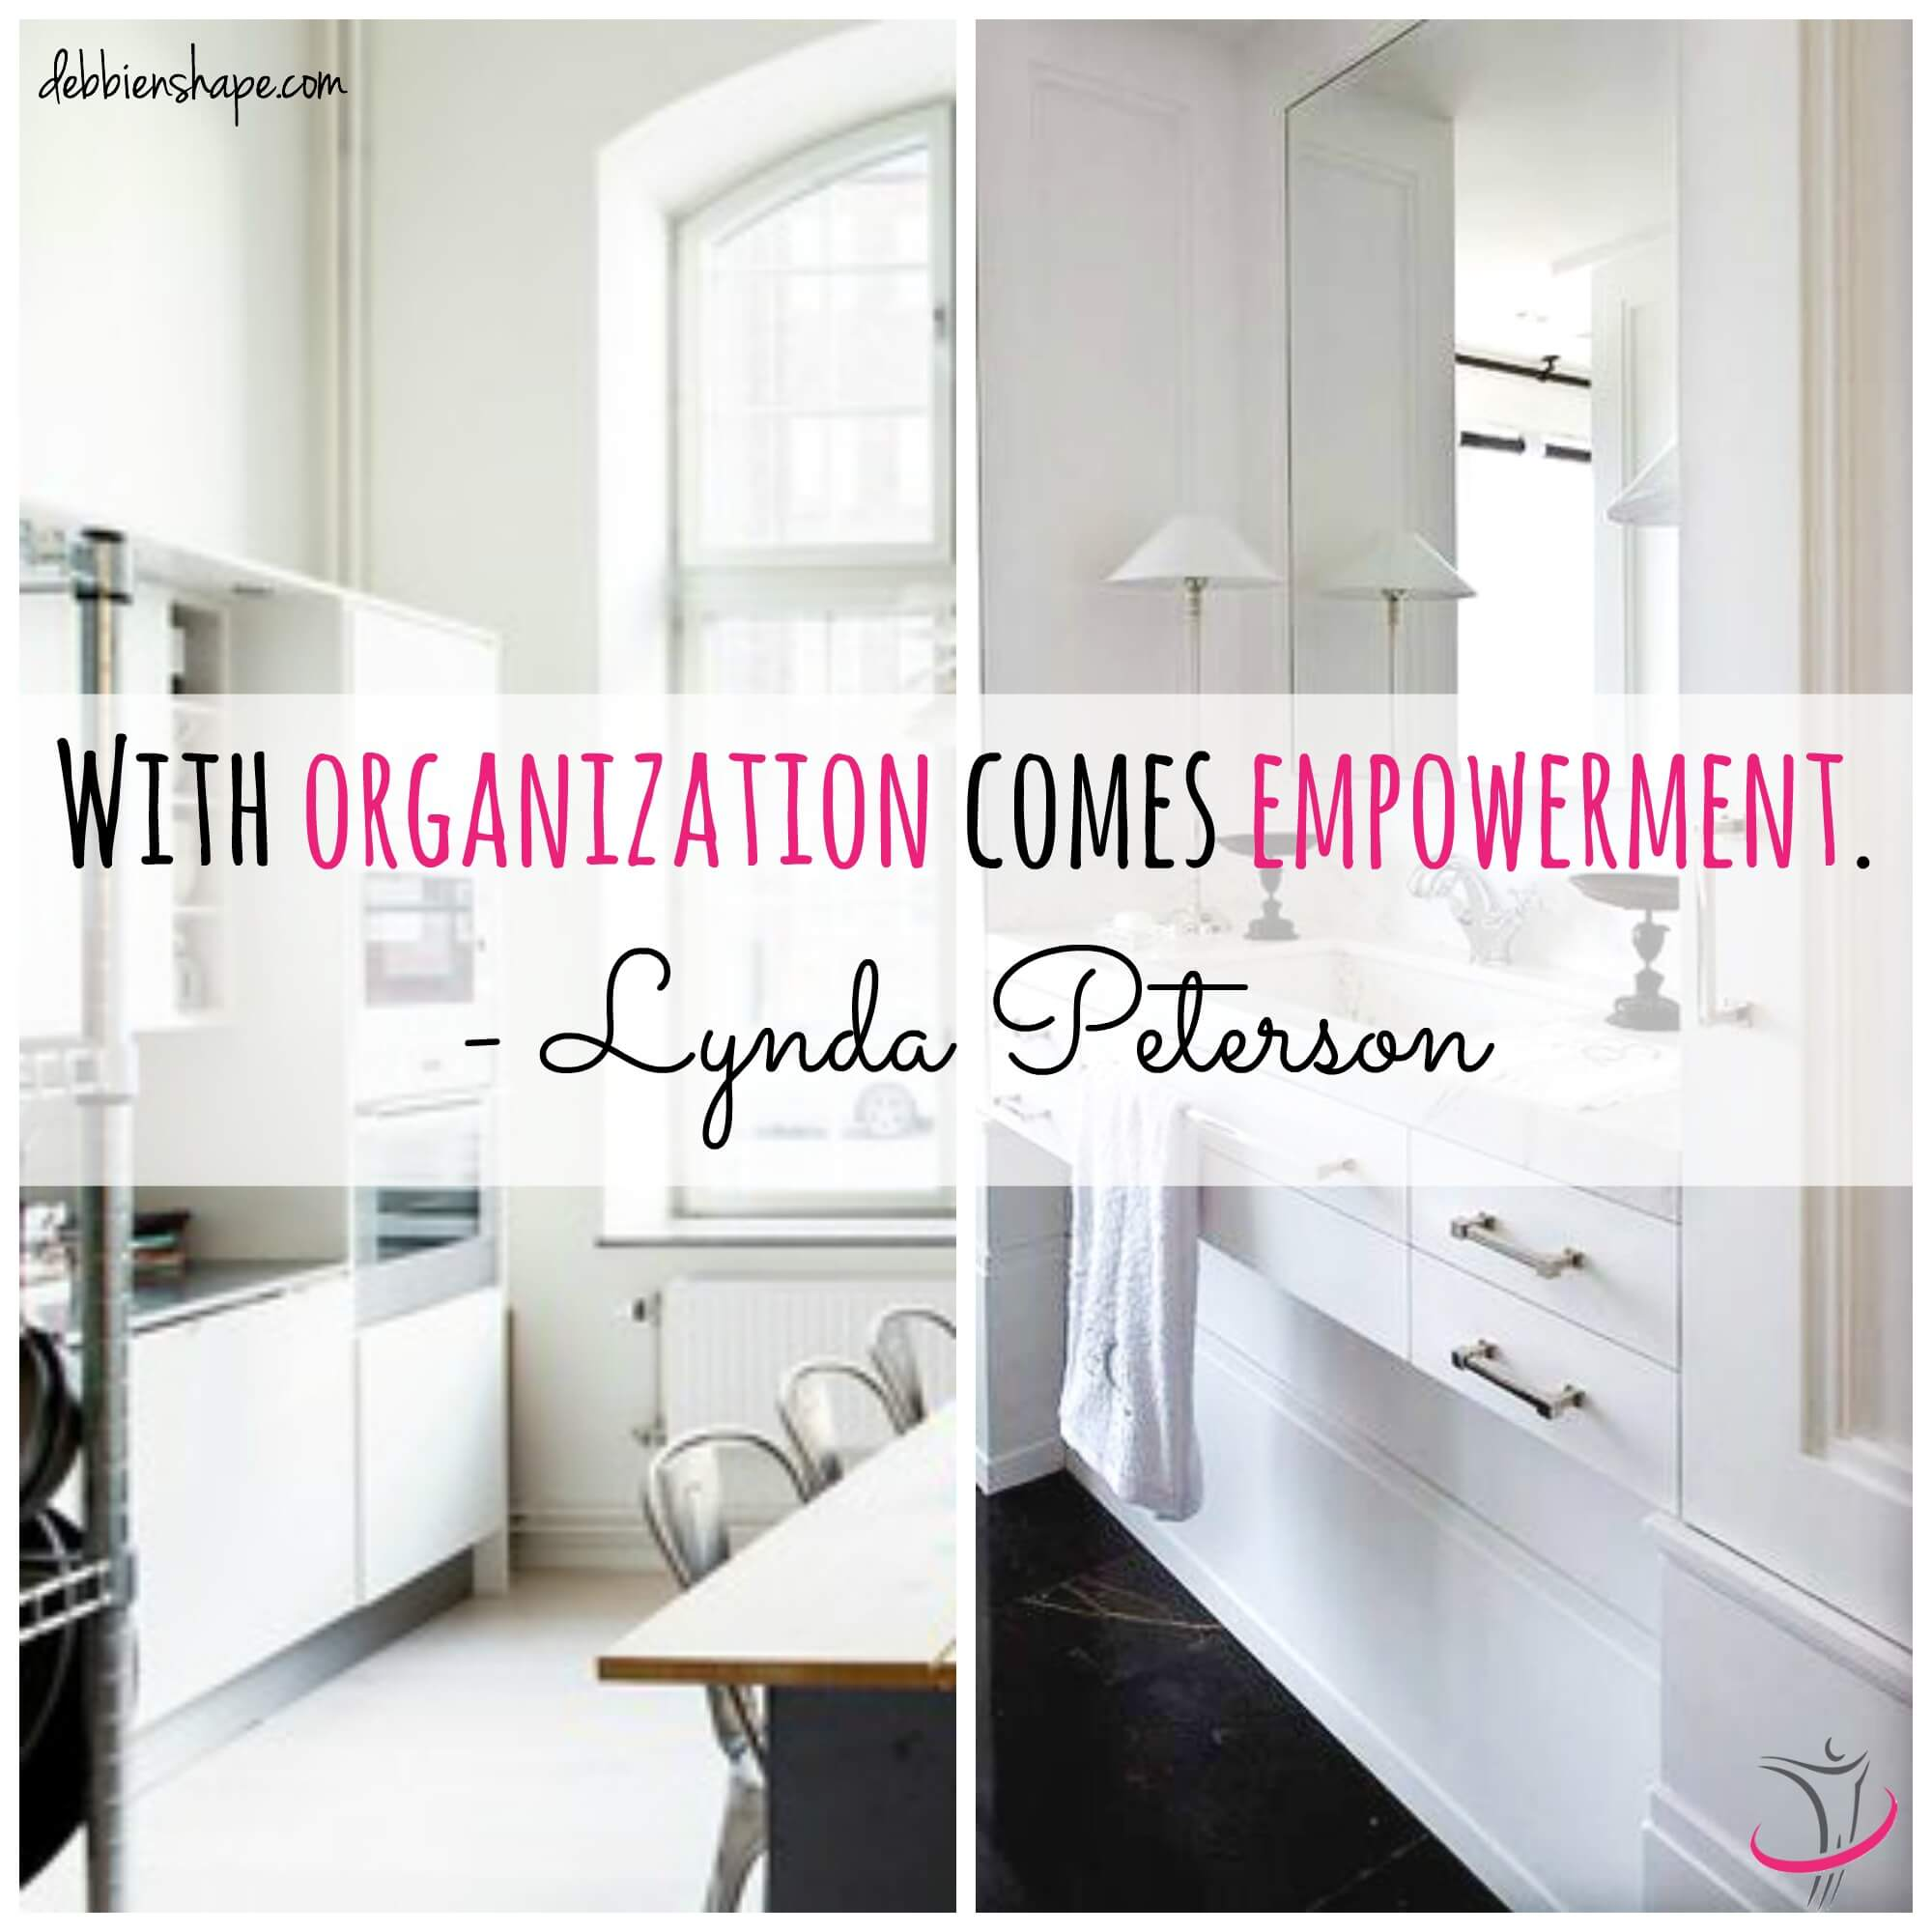 """With organization comes empowerment."" - Lynda Peterson"